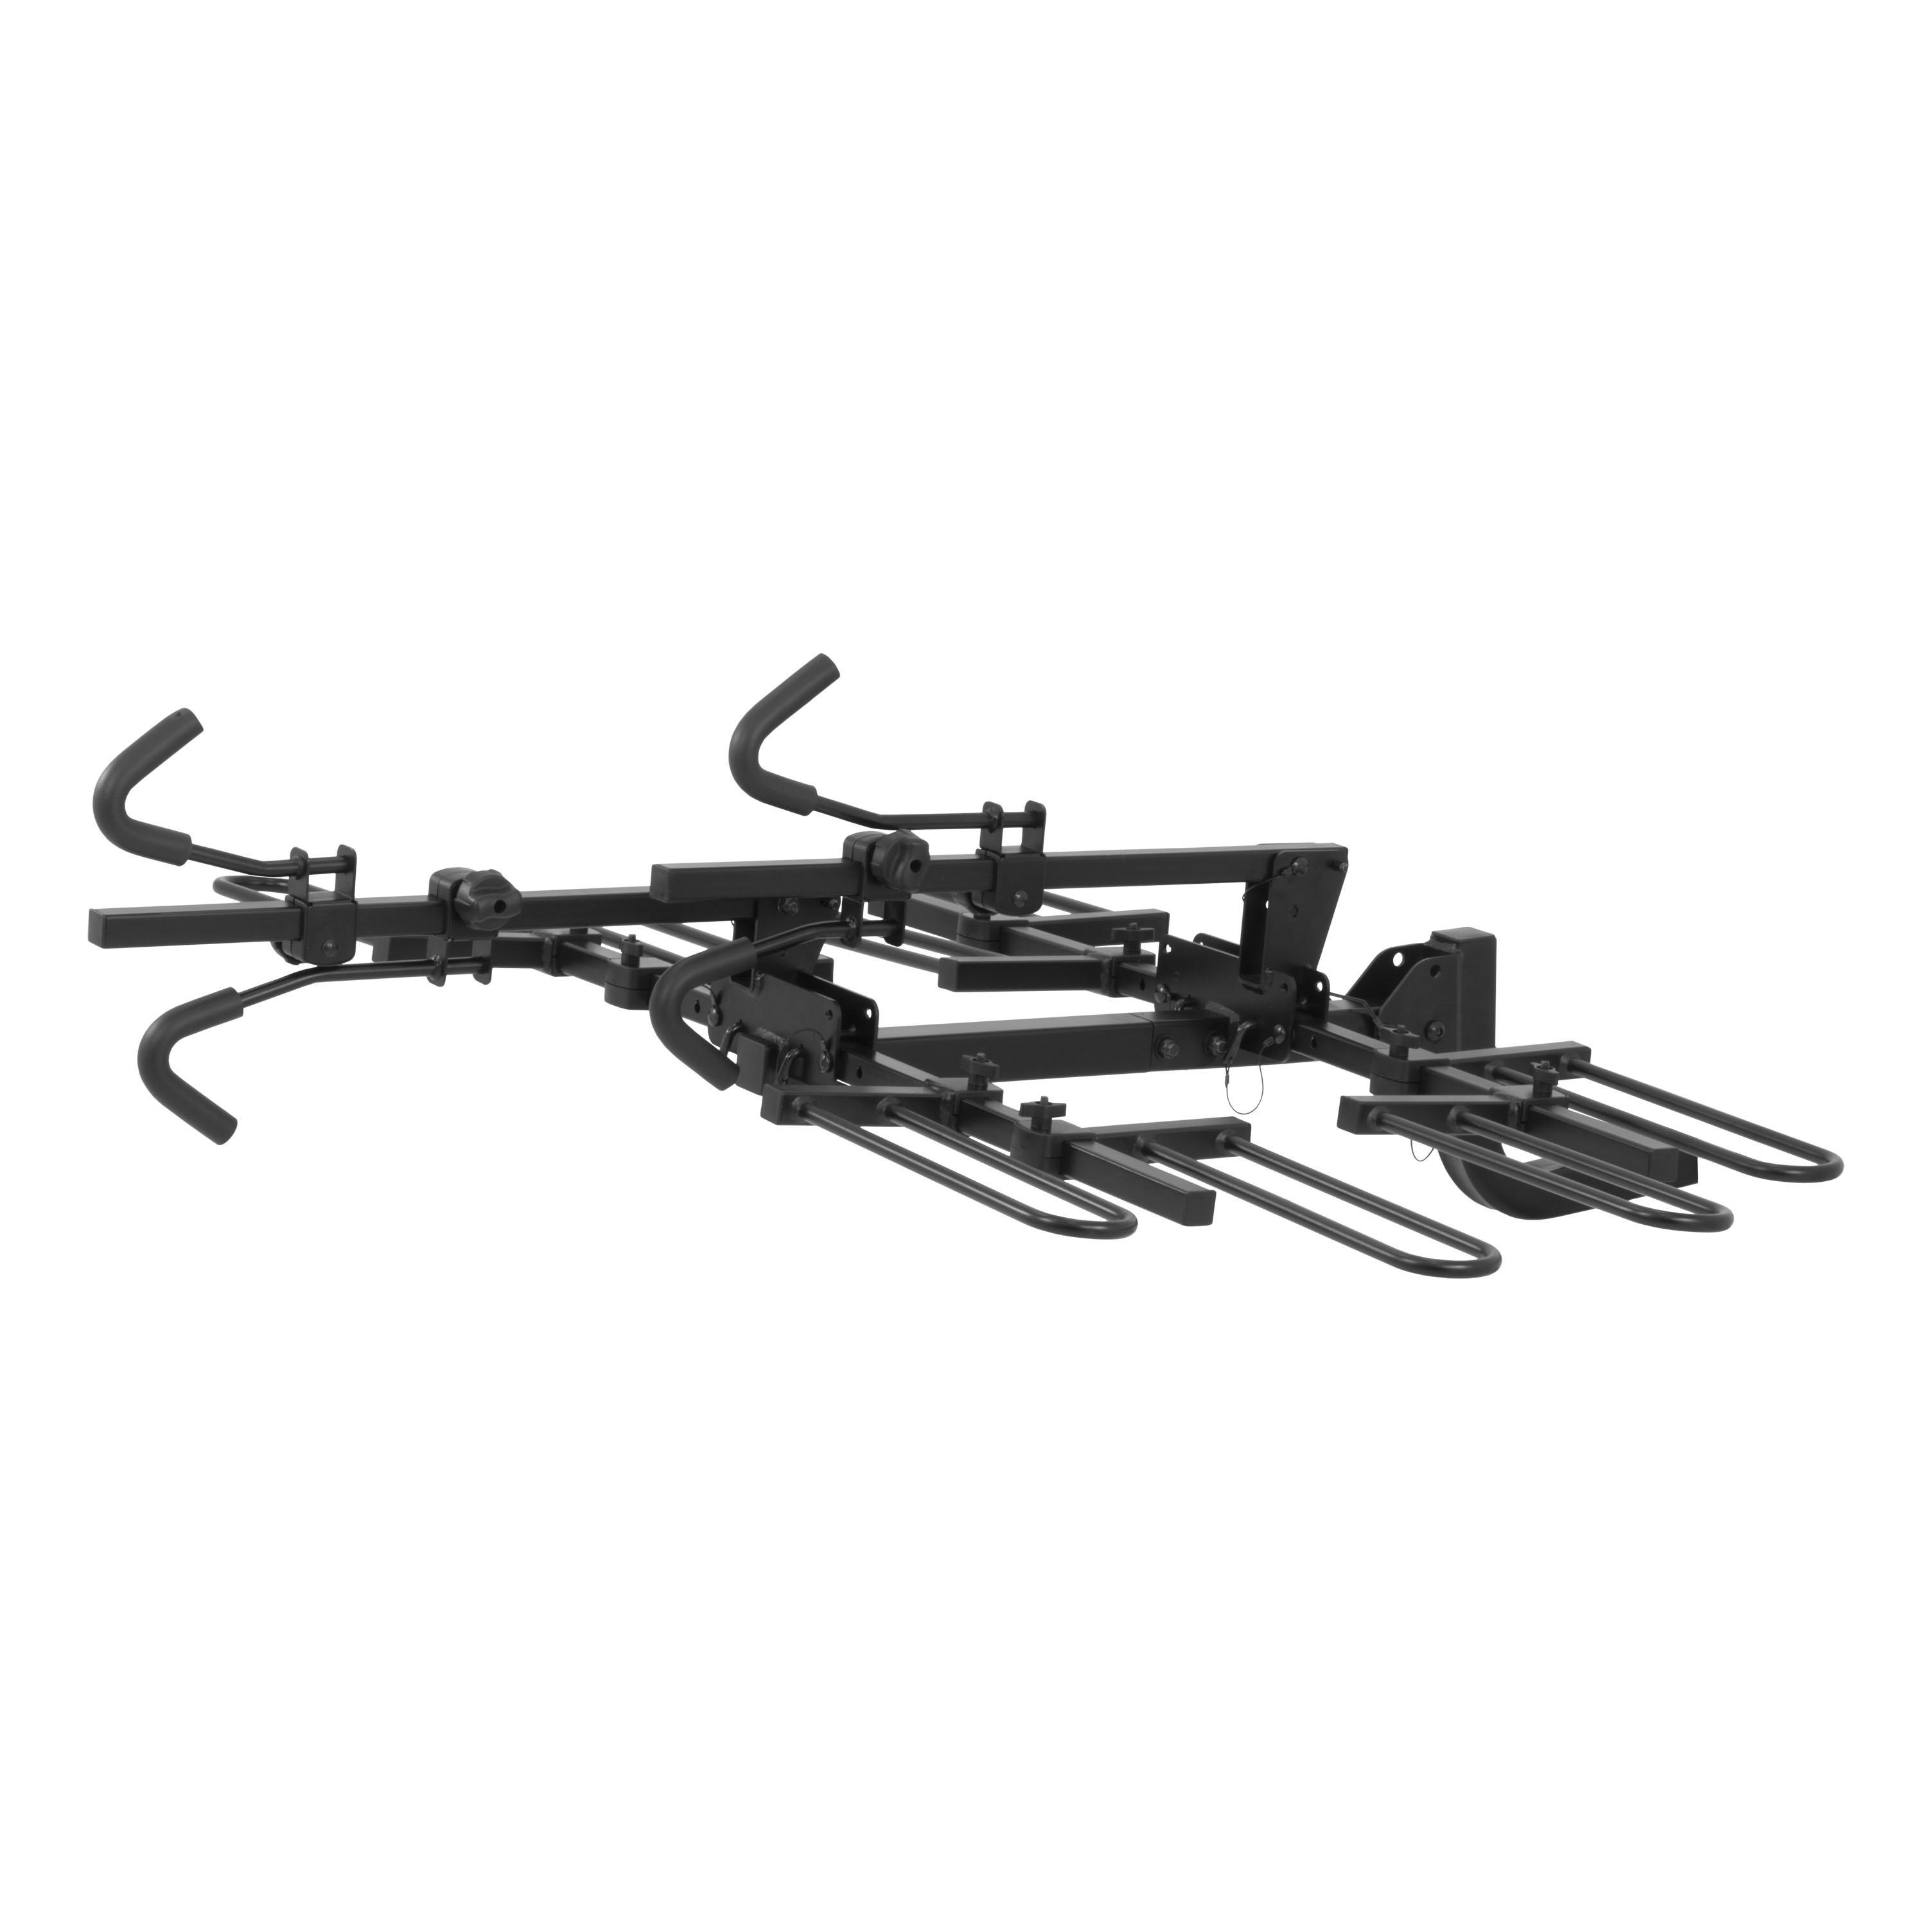 quik on bicycle carrier gear hitch ub reviews duty co review state monolith outdoors bike heavy rack outdoor mount double